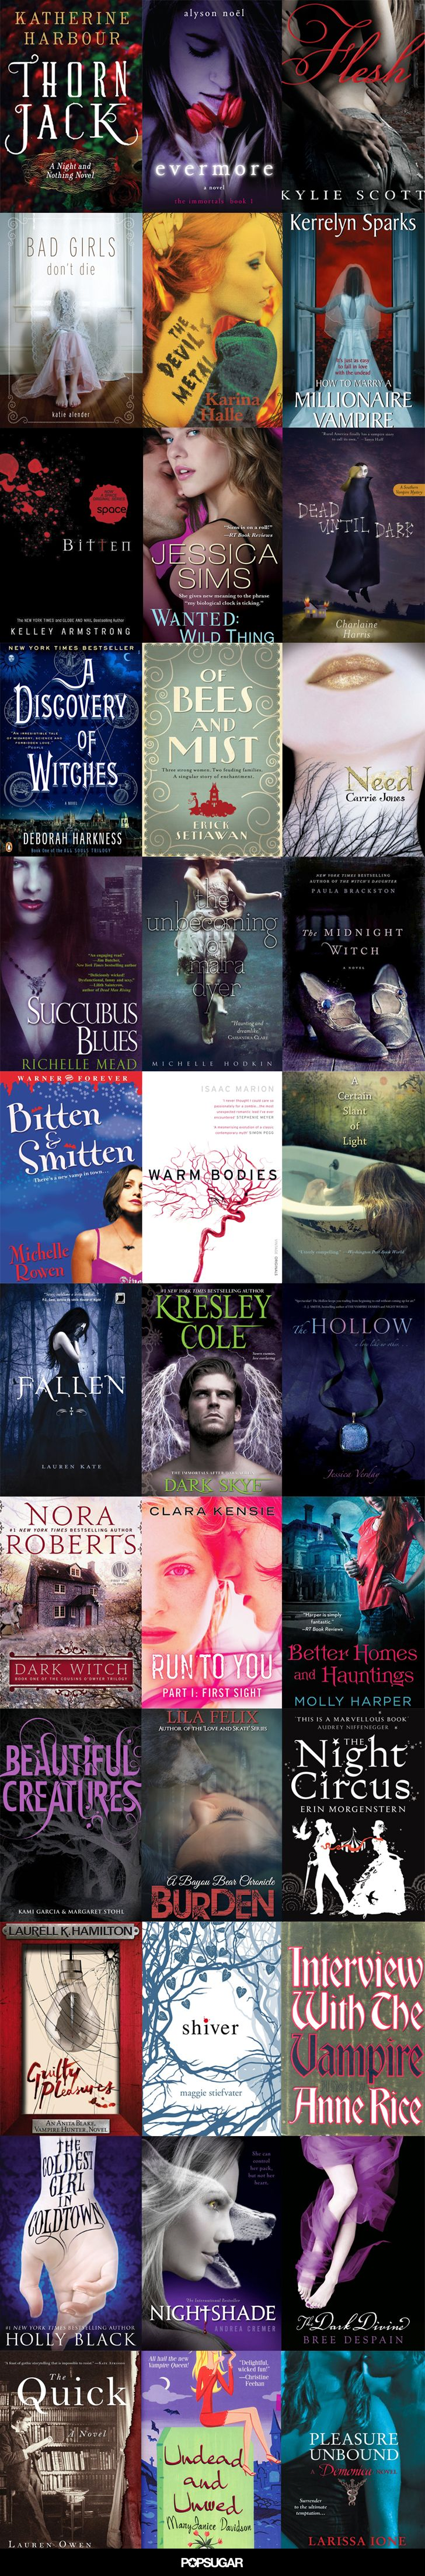 38 Paranormal Romance Books That Are Spookily Sexy...I can attest for Fallen. Great series.